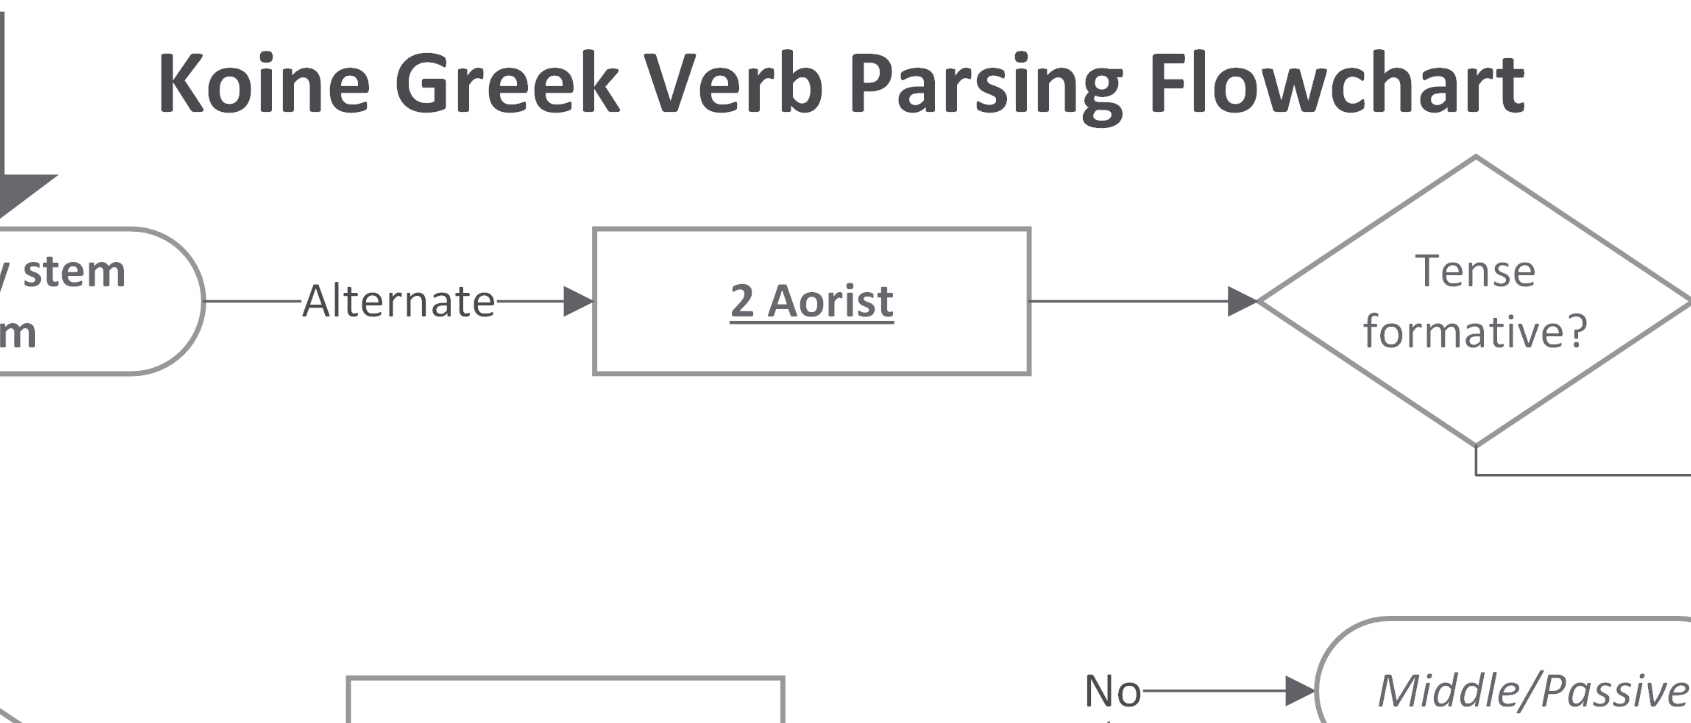 Koine Greek Verb Parsing Flowchart